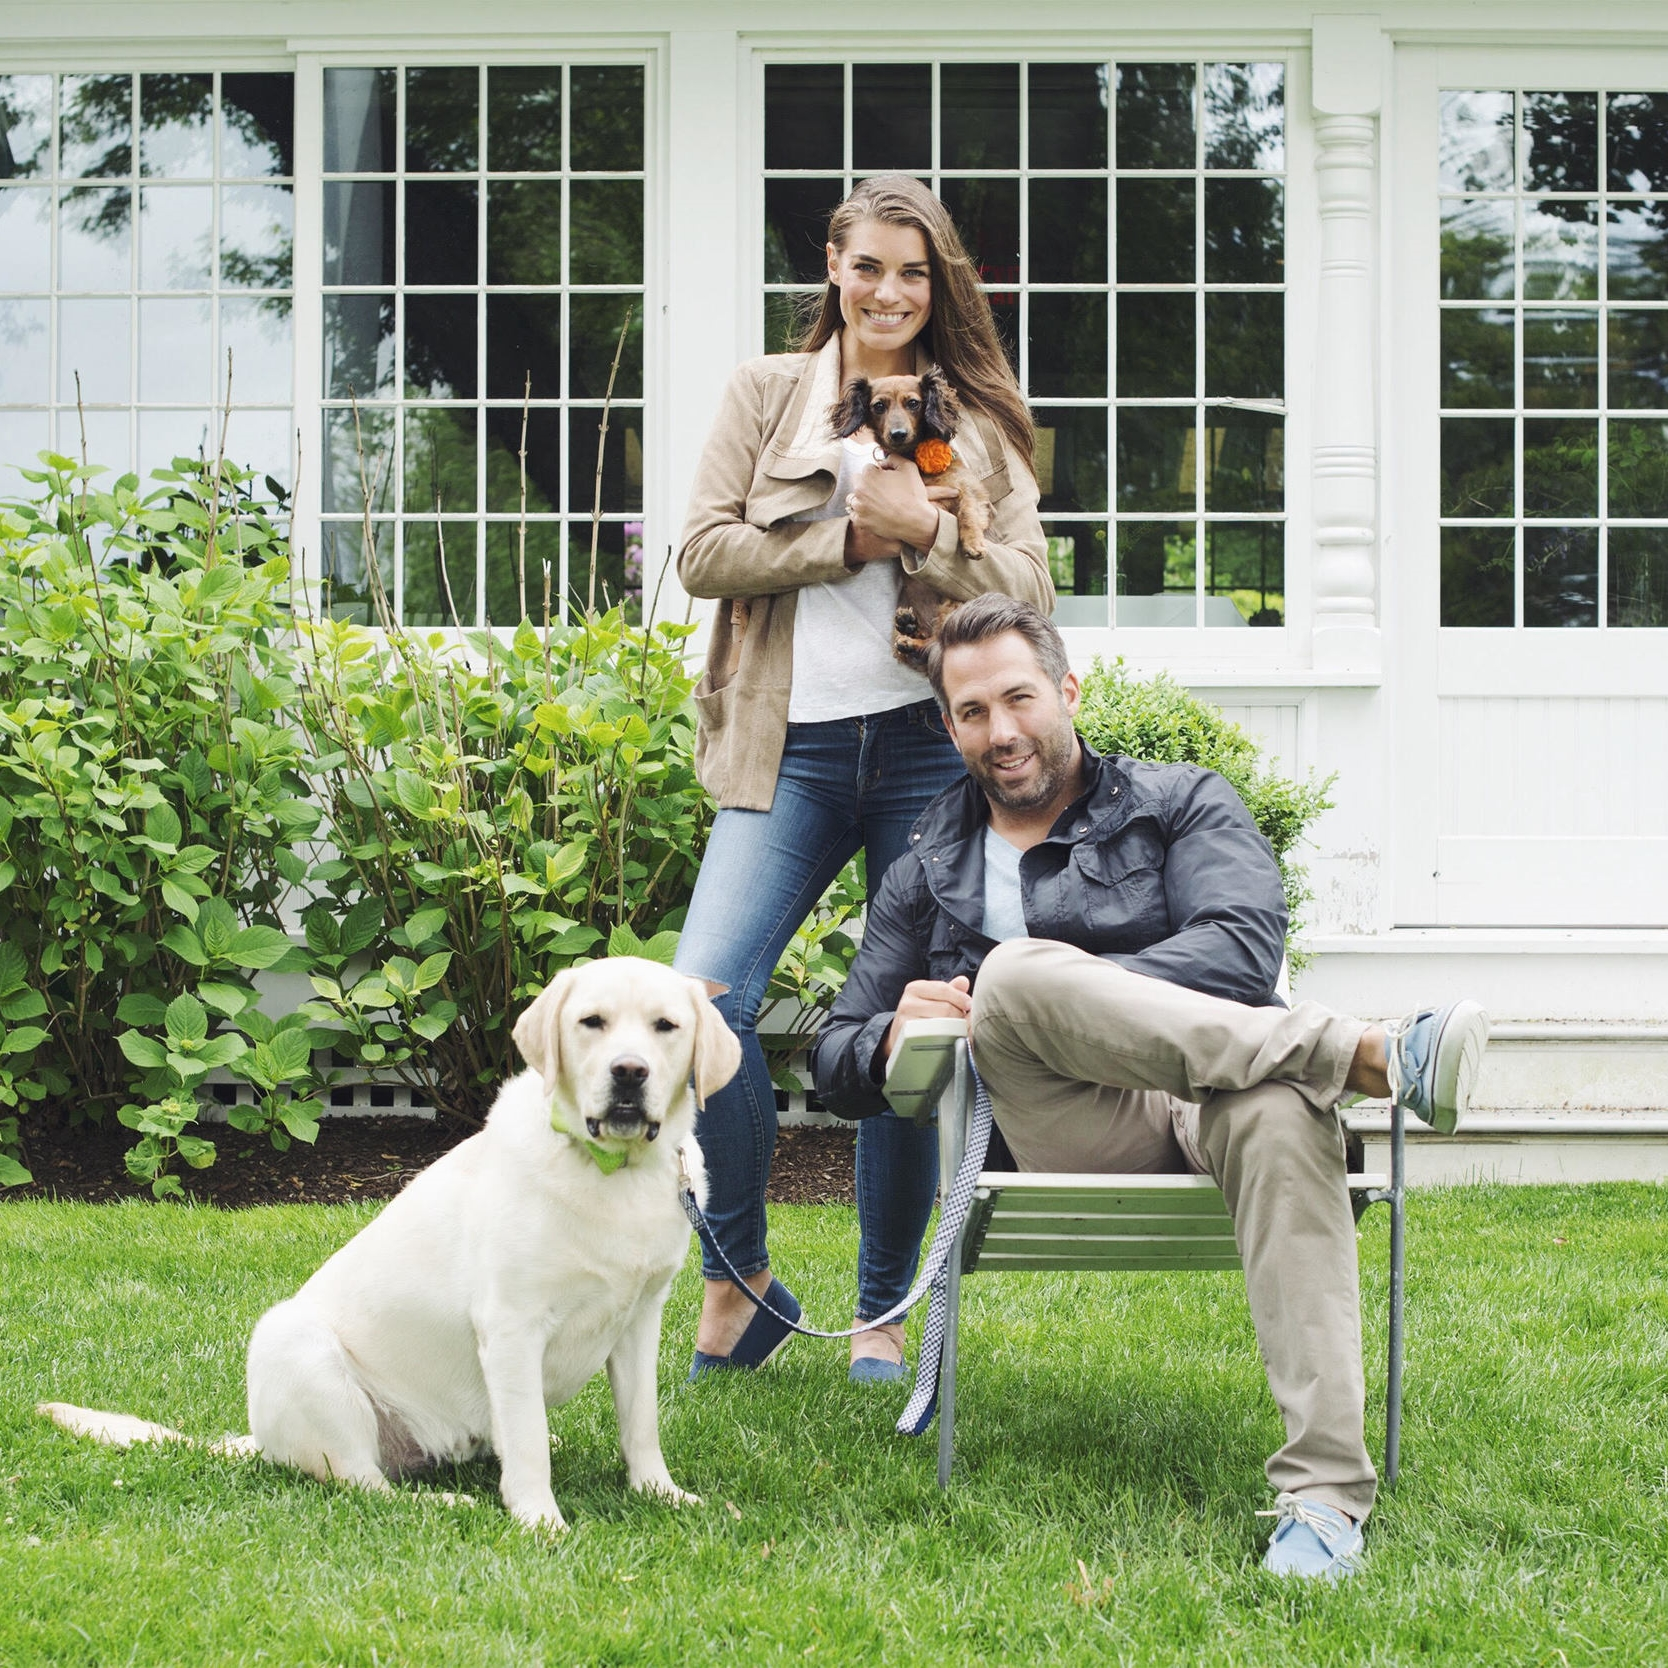 Christopher Seiger, Catherine Long, Donnie and Holly came to The Maidstone to get engaged with their dogs!